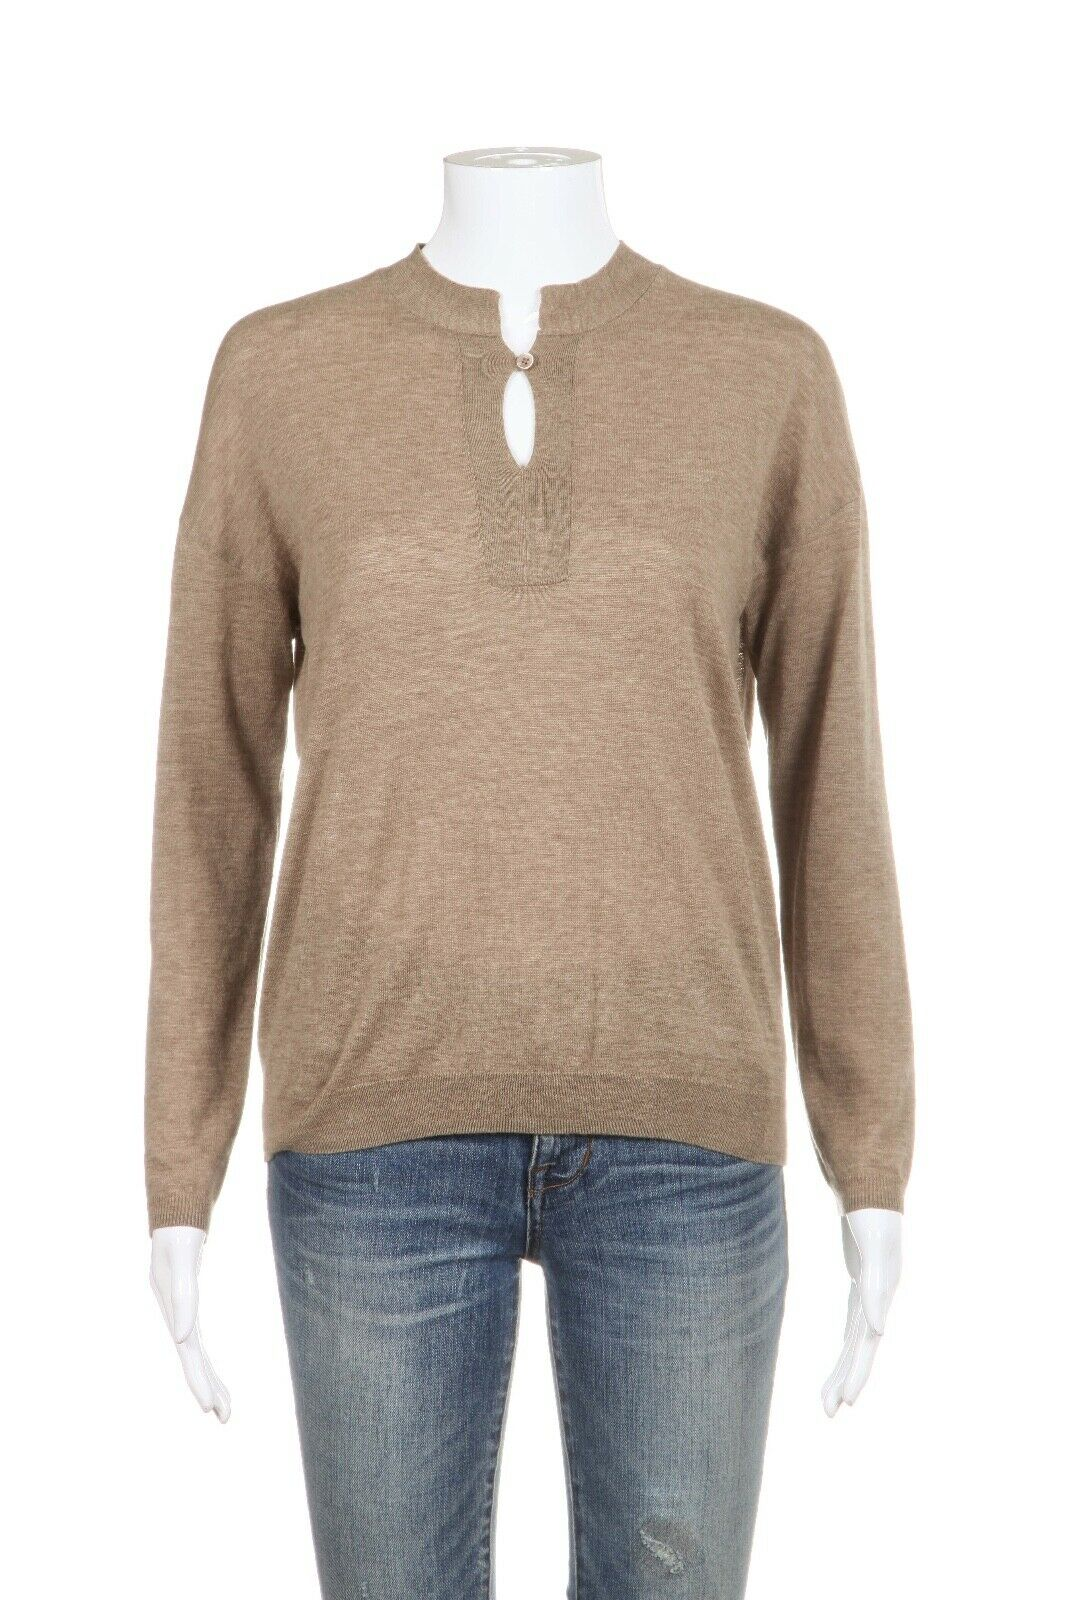 FACONNABLE Thin Knit Wool Silk Sweater Size S